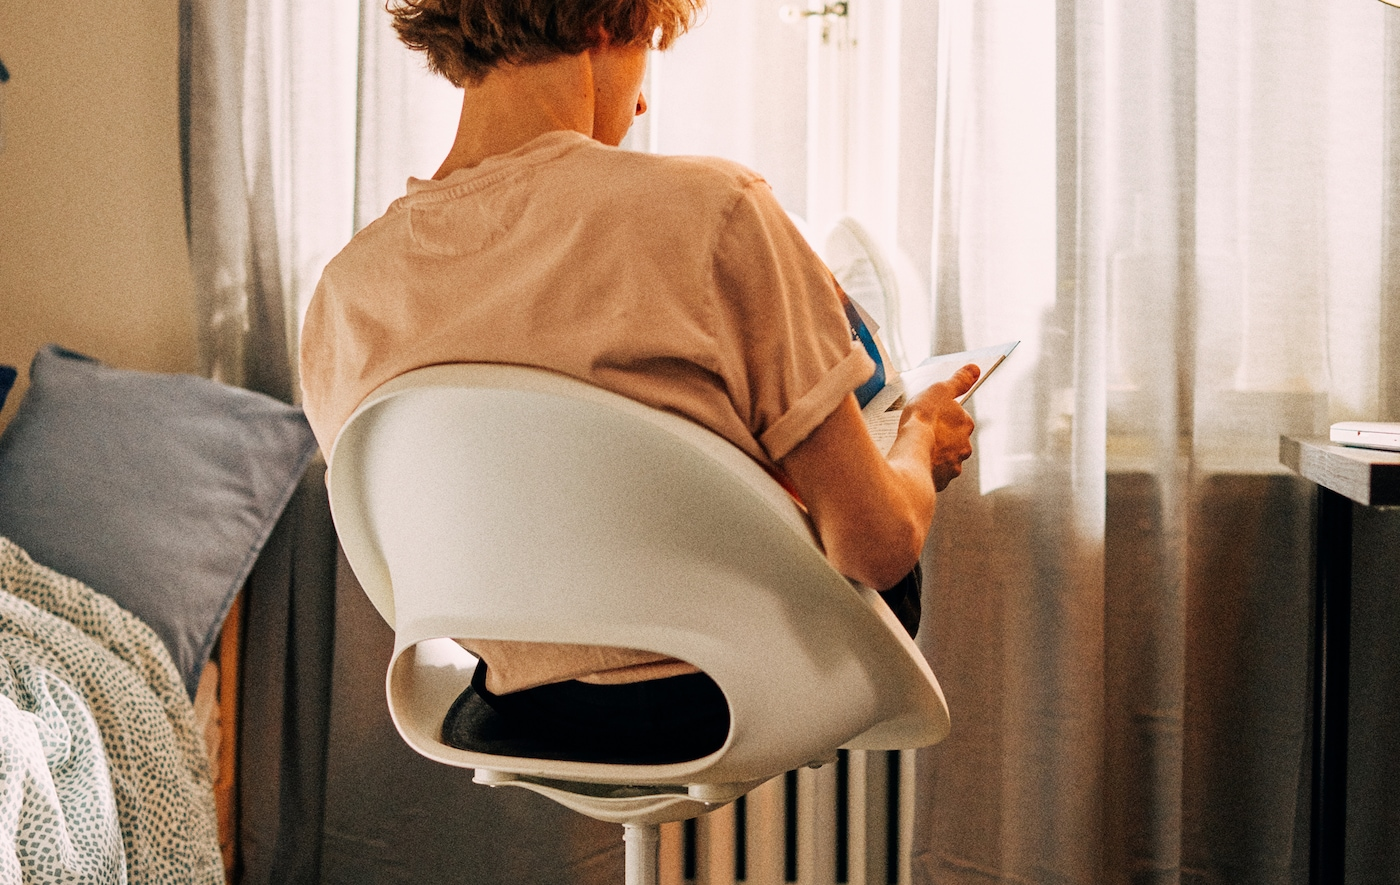 A student sits in a swivel chair facing the window, his feet resting on the radiator in front of him as he studies.